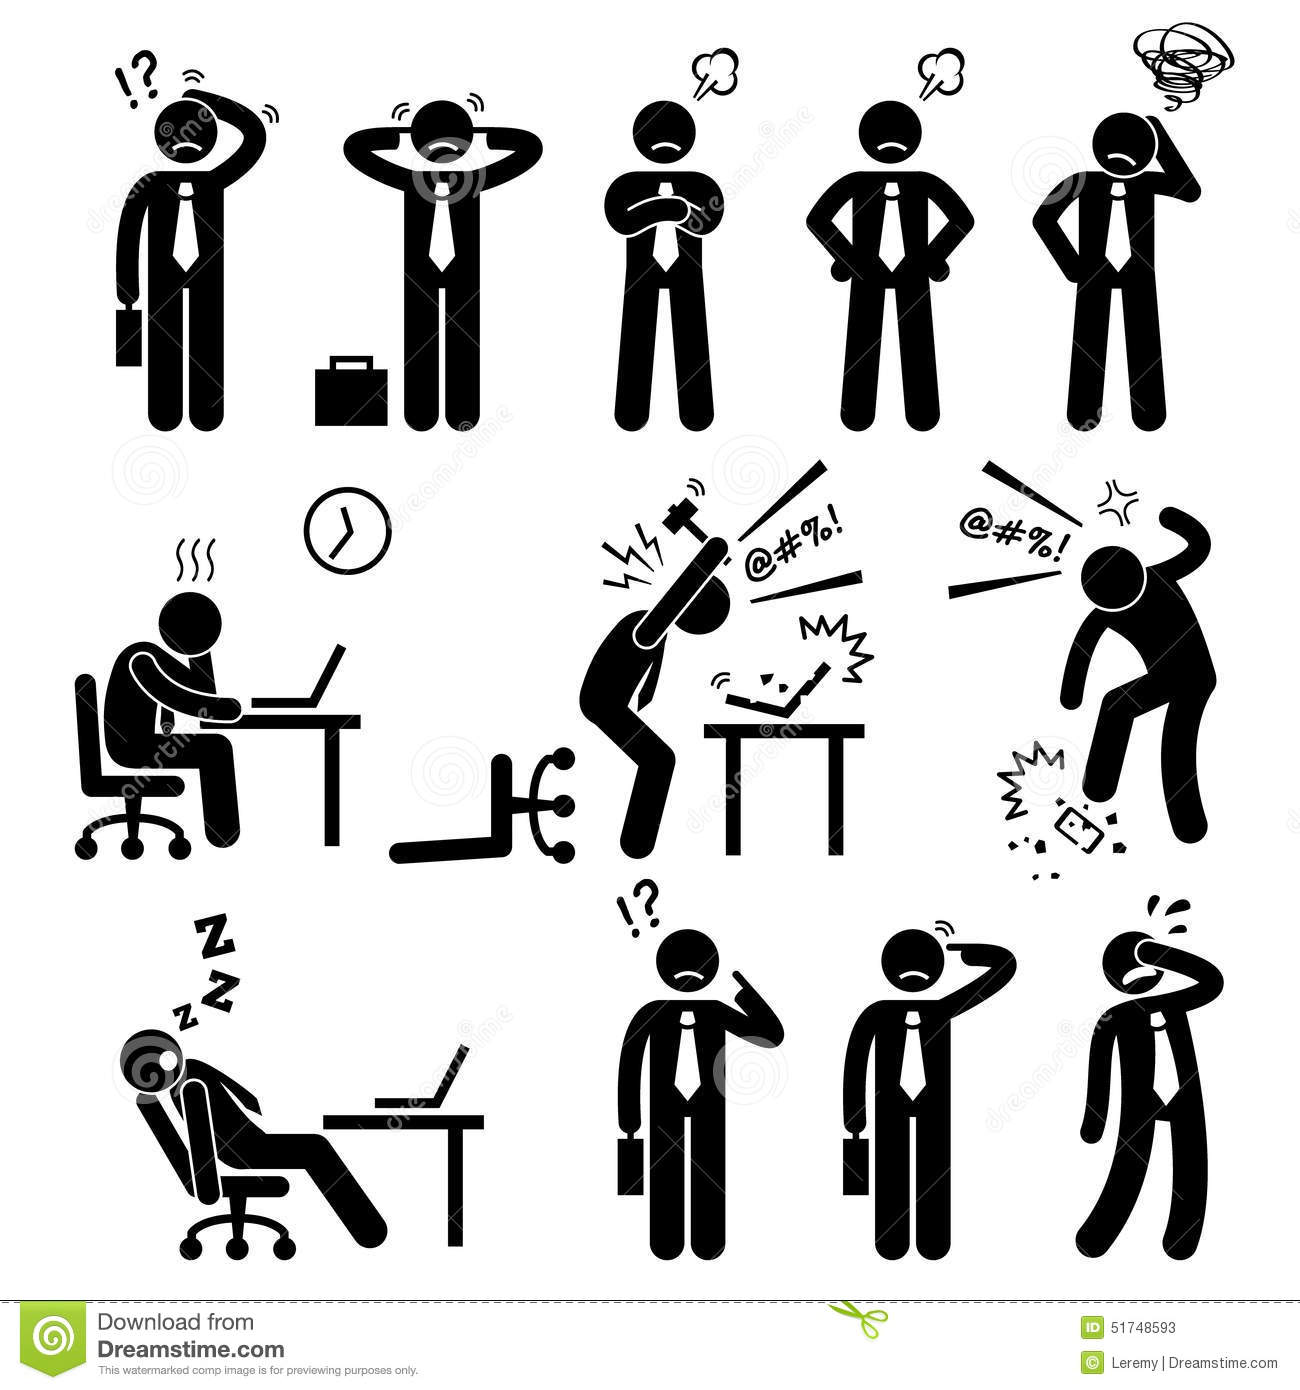 hight resolution of a set of human pictogram reprensenting business businessman poses and action of a stressful workplace the businessman is confuse sad angry